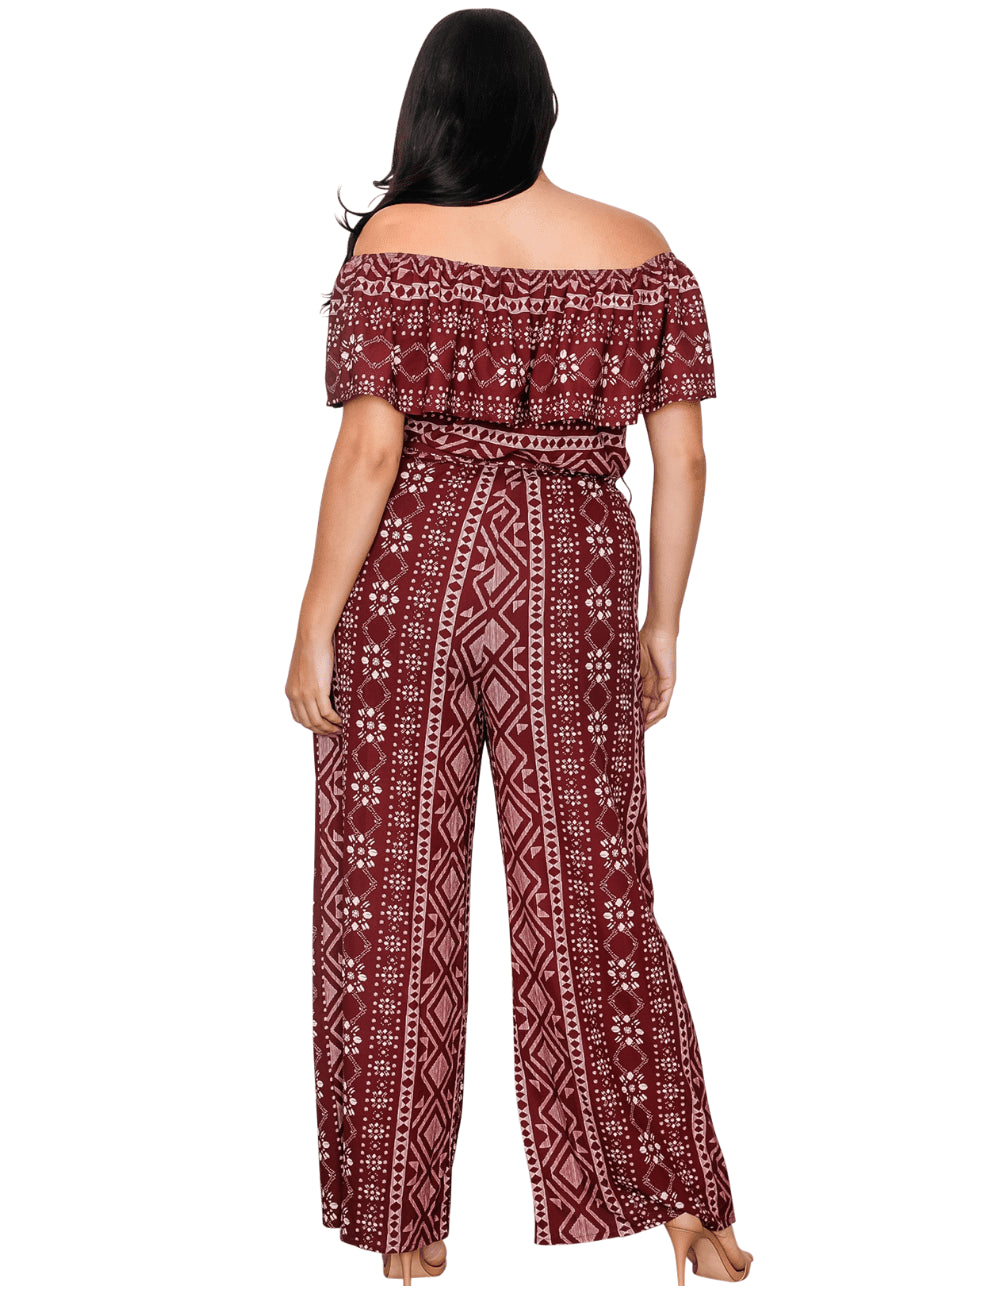 plus size Jumpsuit XL / AUS 16 / Burgundy Red Maya Jumpsuit